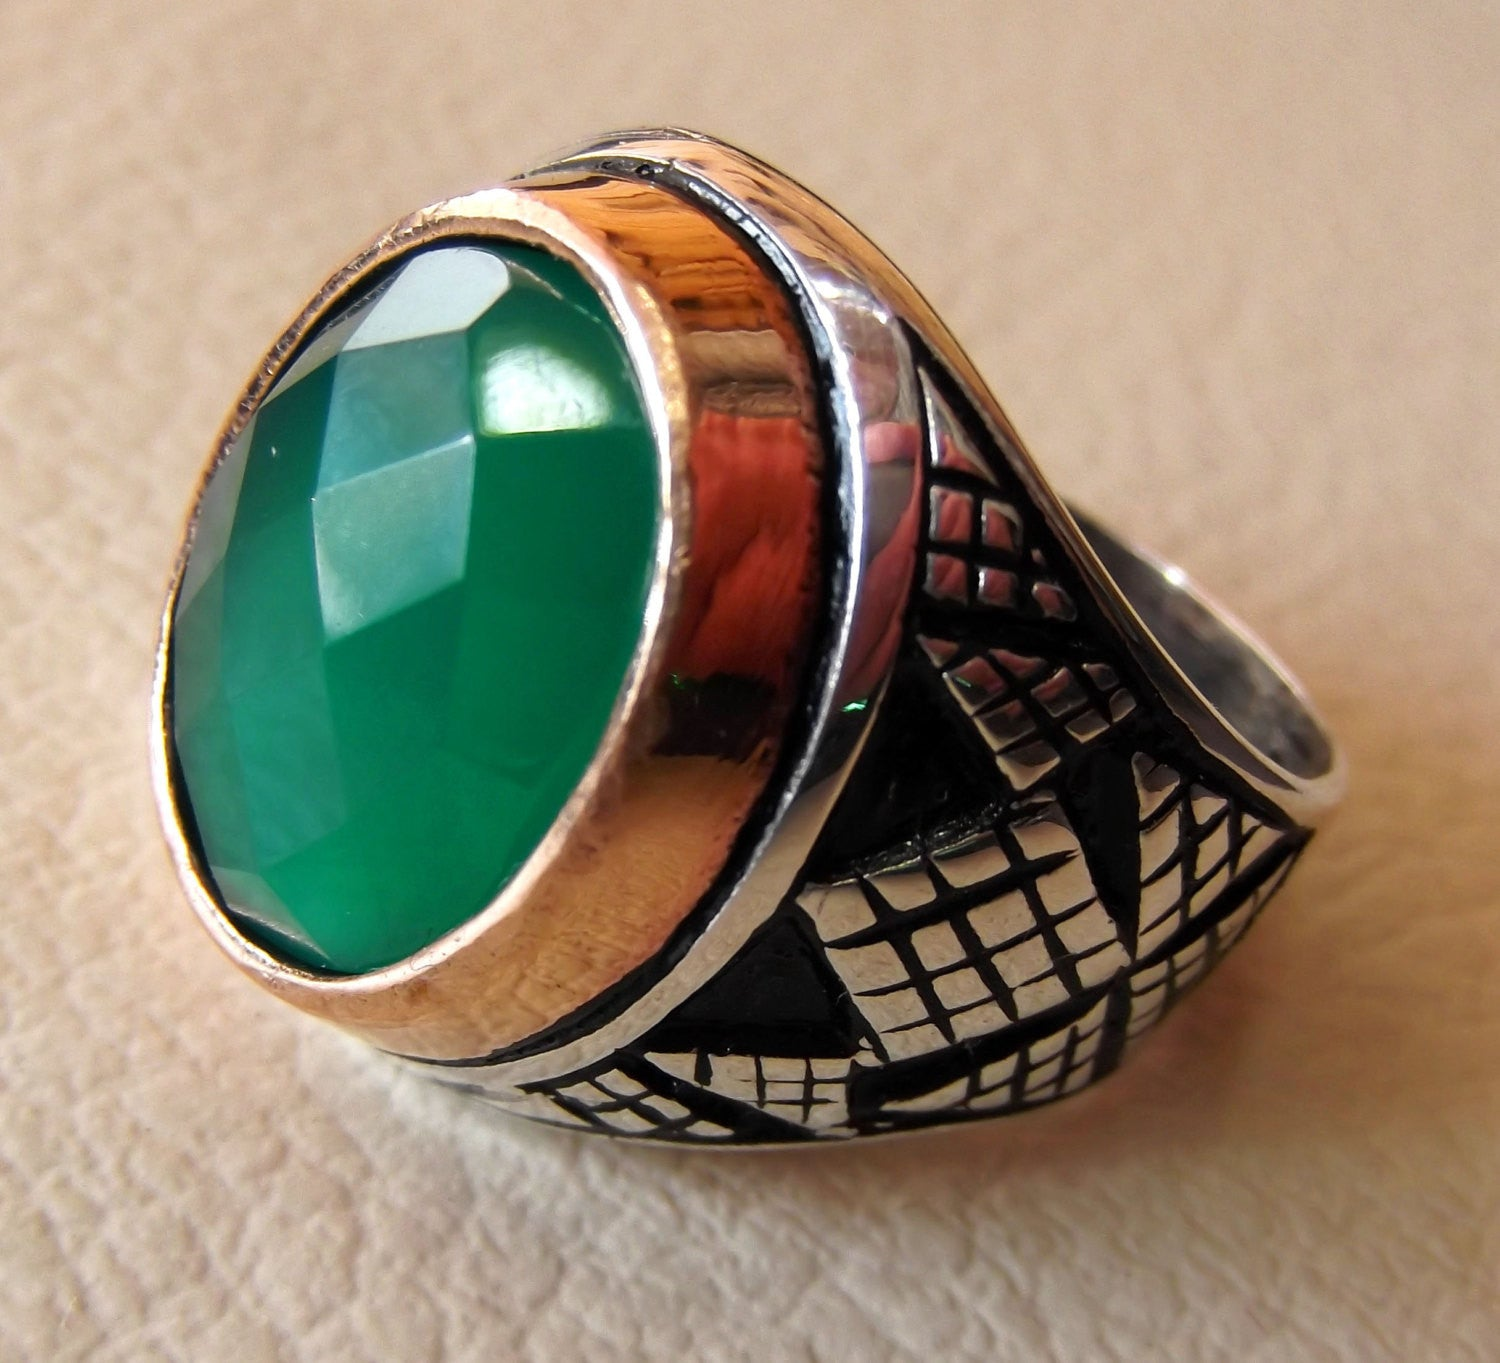 green agate aqeeq sterling silver 925 vintage men ring arabic style jewelry any size fast shipping faceted semi precious natural stone